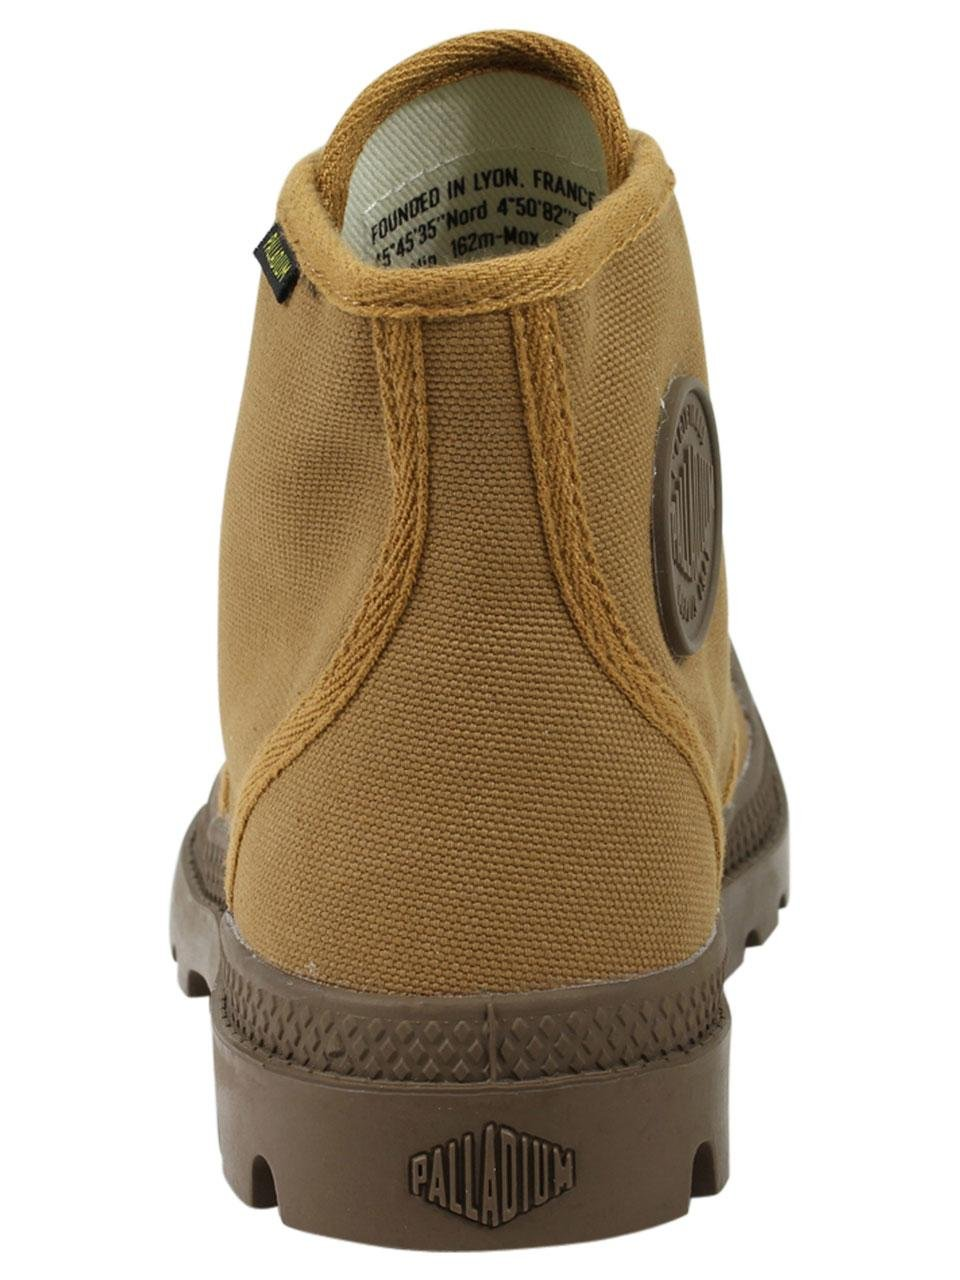 Palladium Chukka Men's Pampa Hi Originale Chukka Palladium Boot B079NKZYF4 13 D(M) US|Bone Brown 2037a2